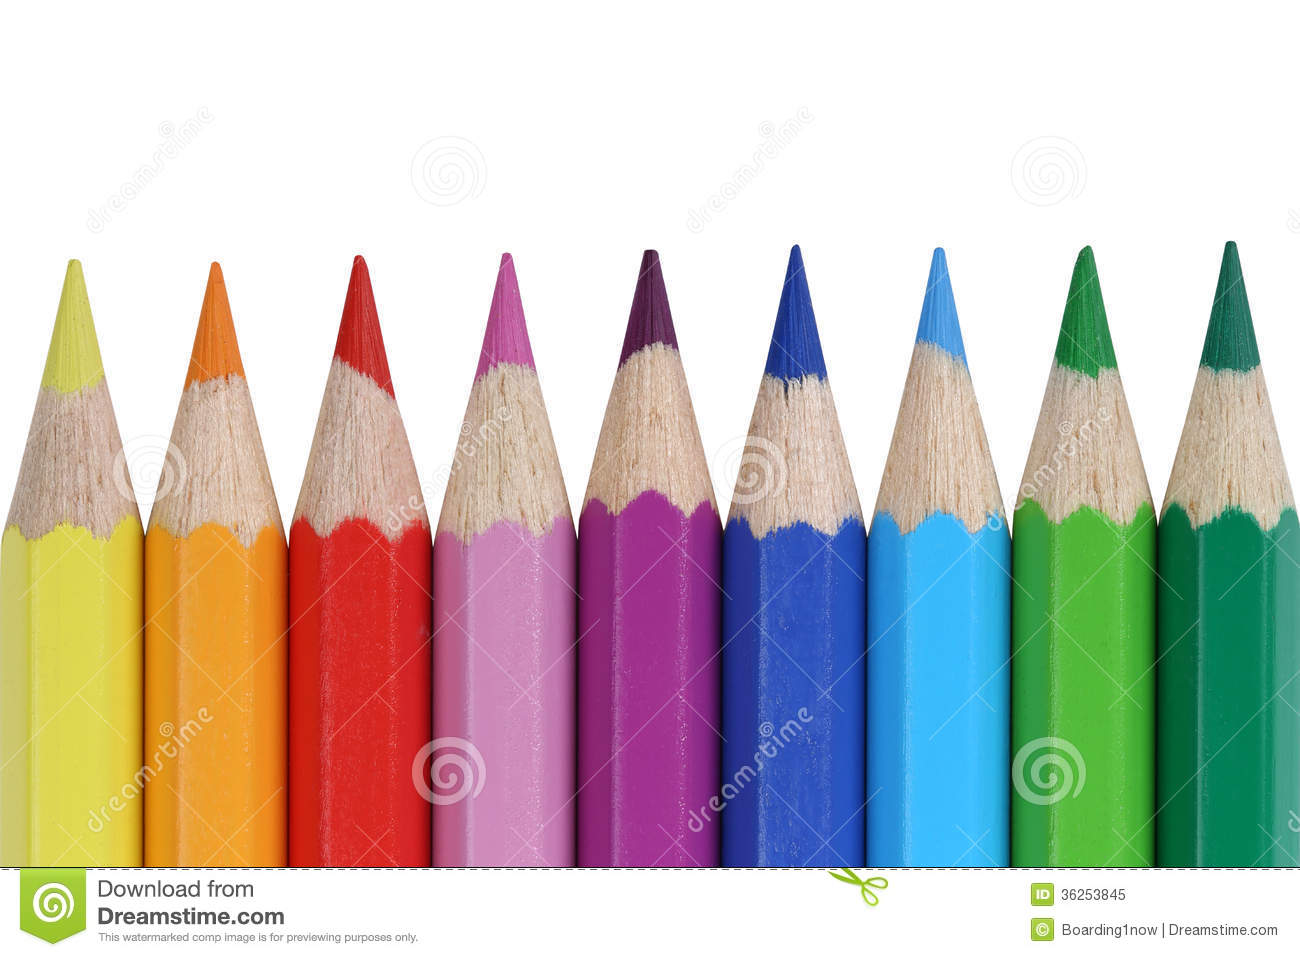 School supplies colored pencils in a row, isolated